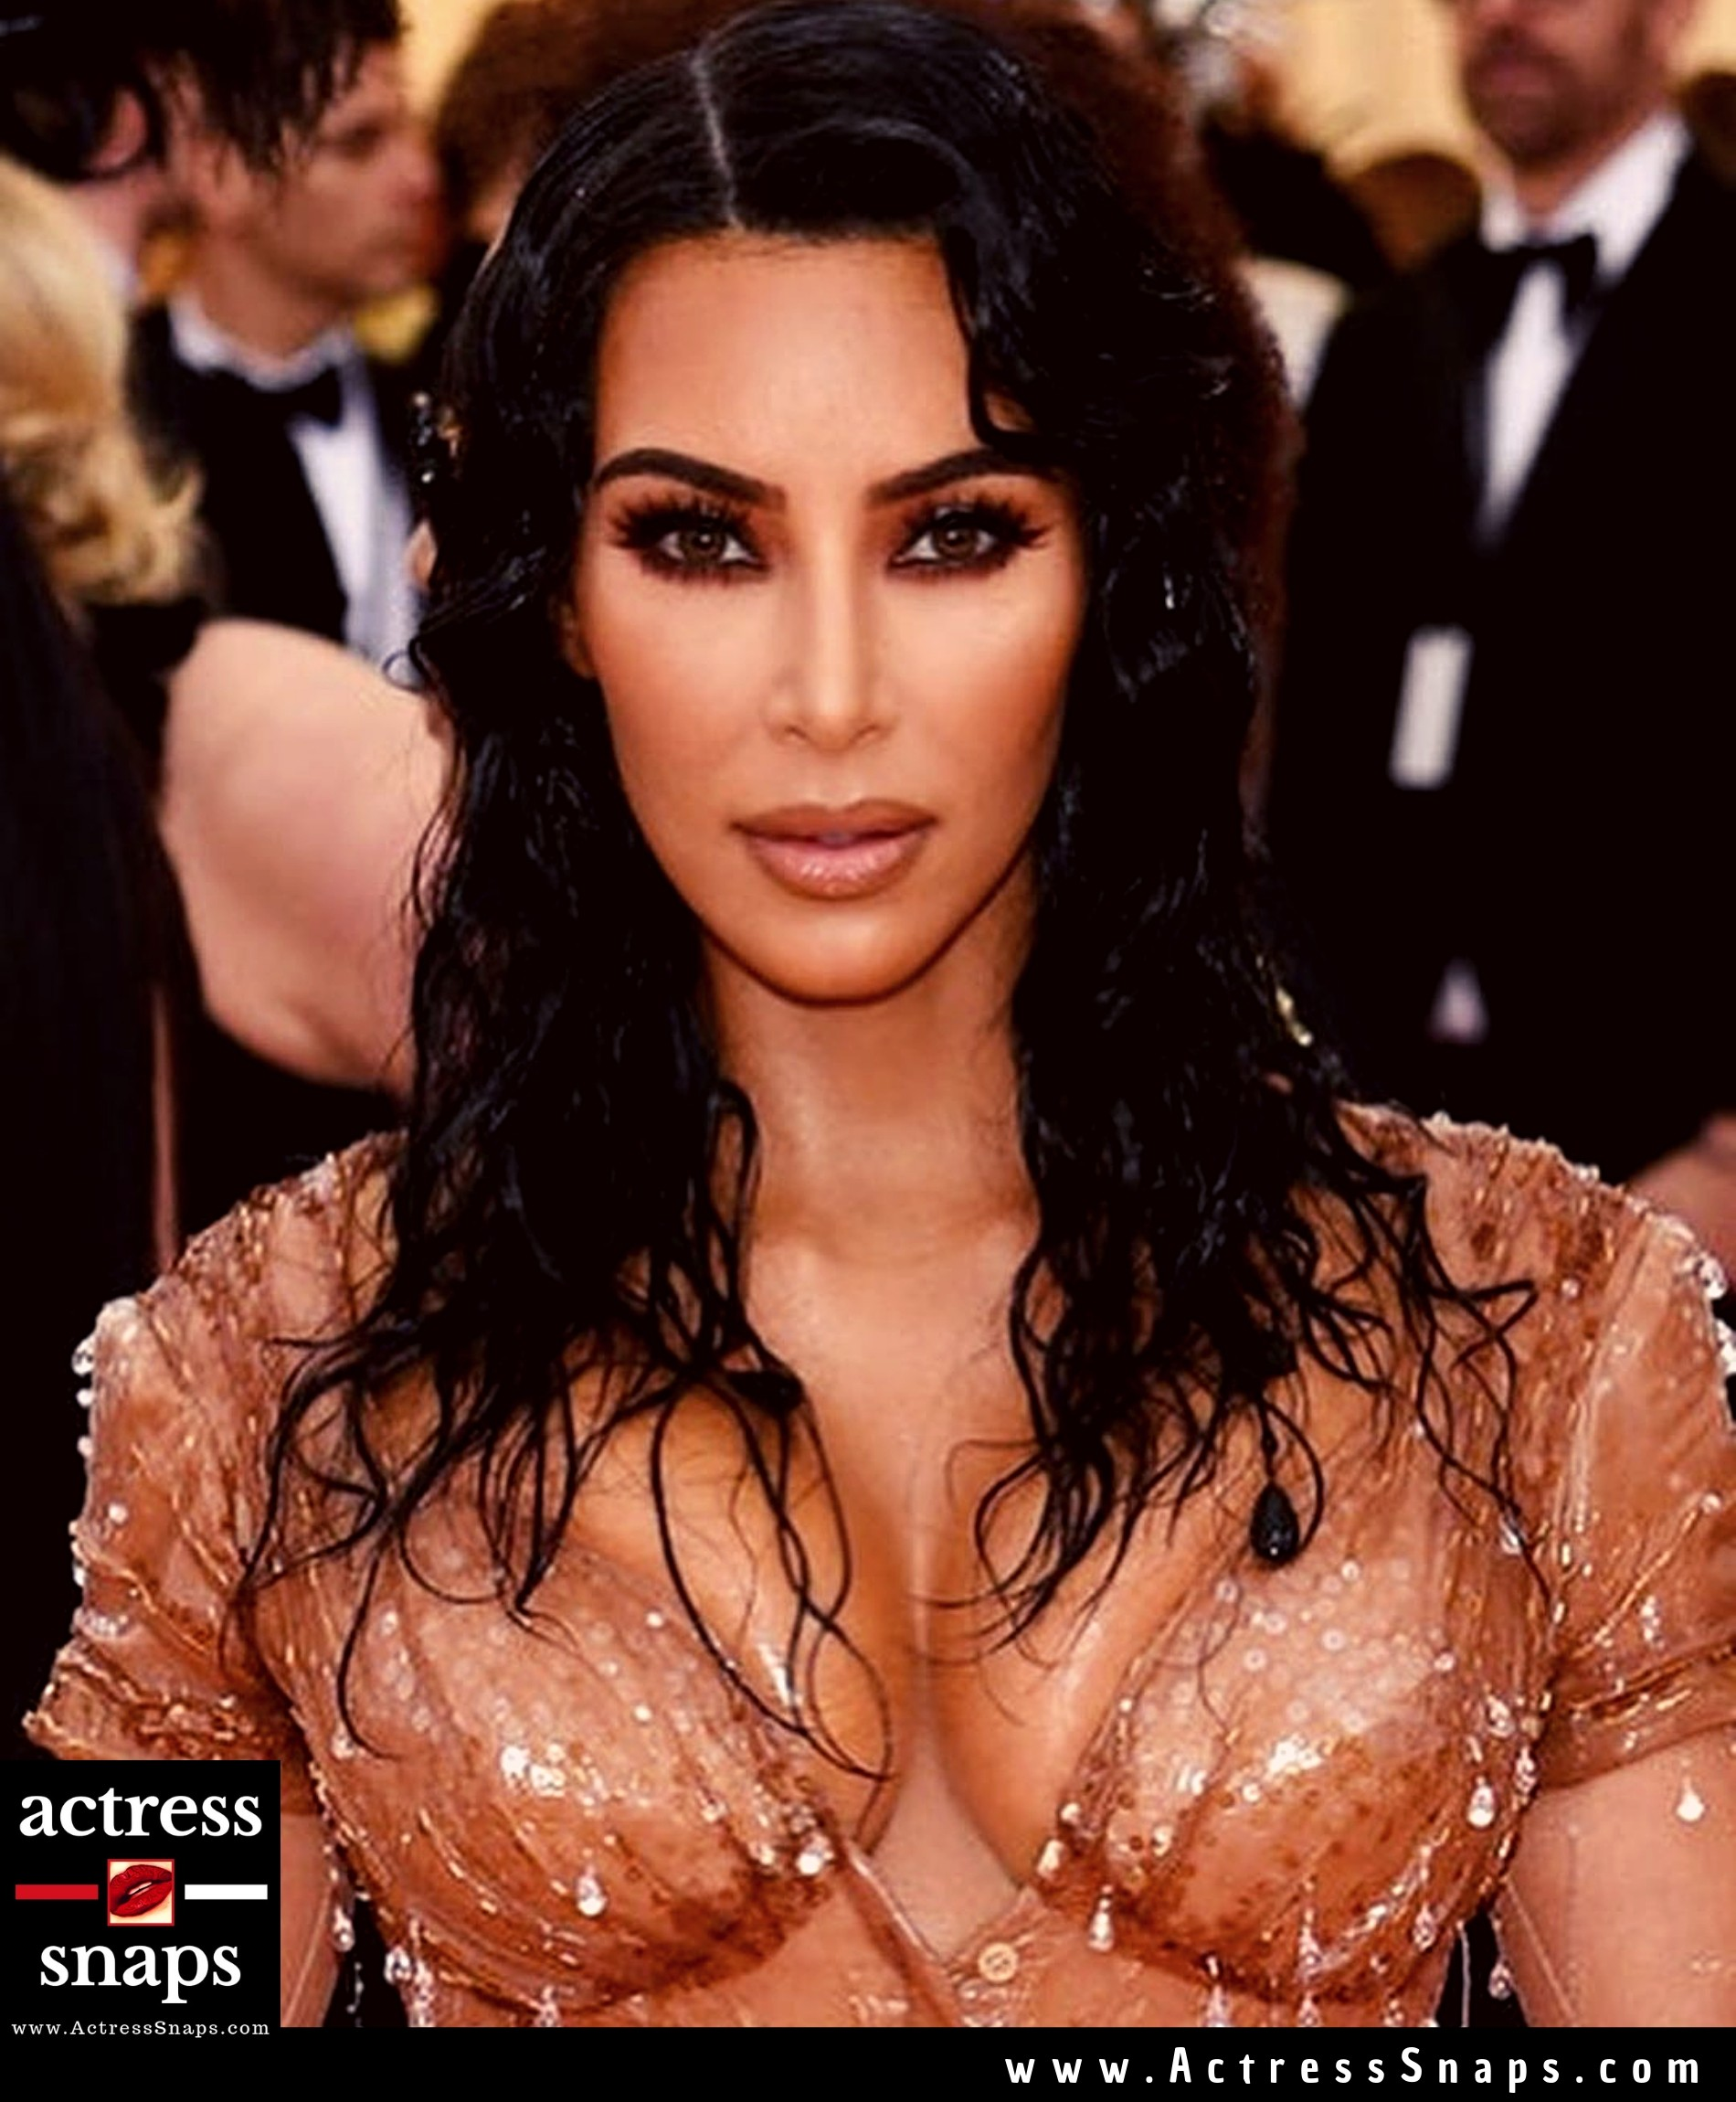 Sexy Kim Kardashian at Met Gala 2019 - Sexy Actress Pictures | Hot Actress Pictures - ActressSnaps.com